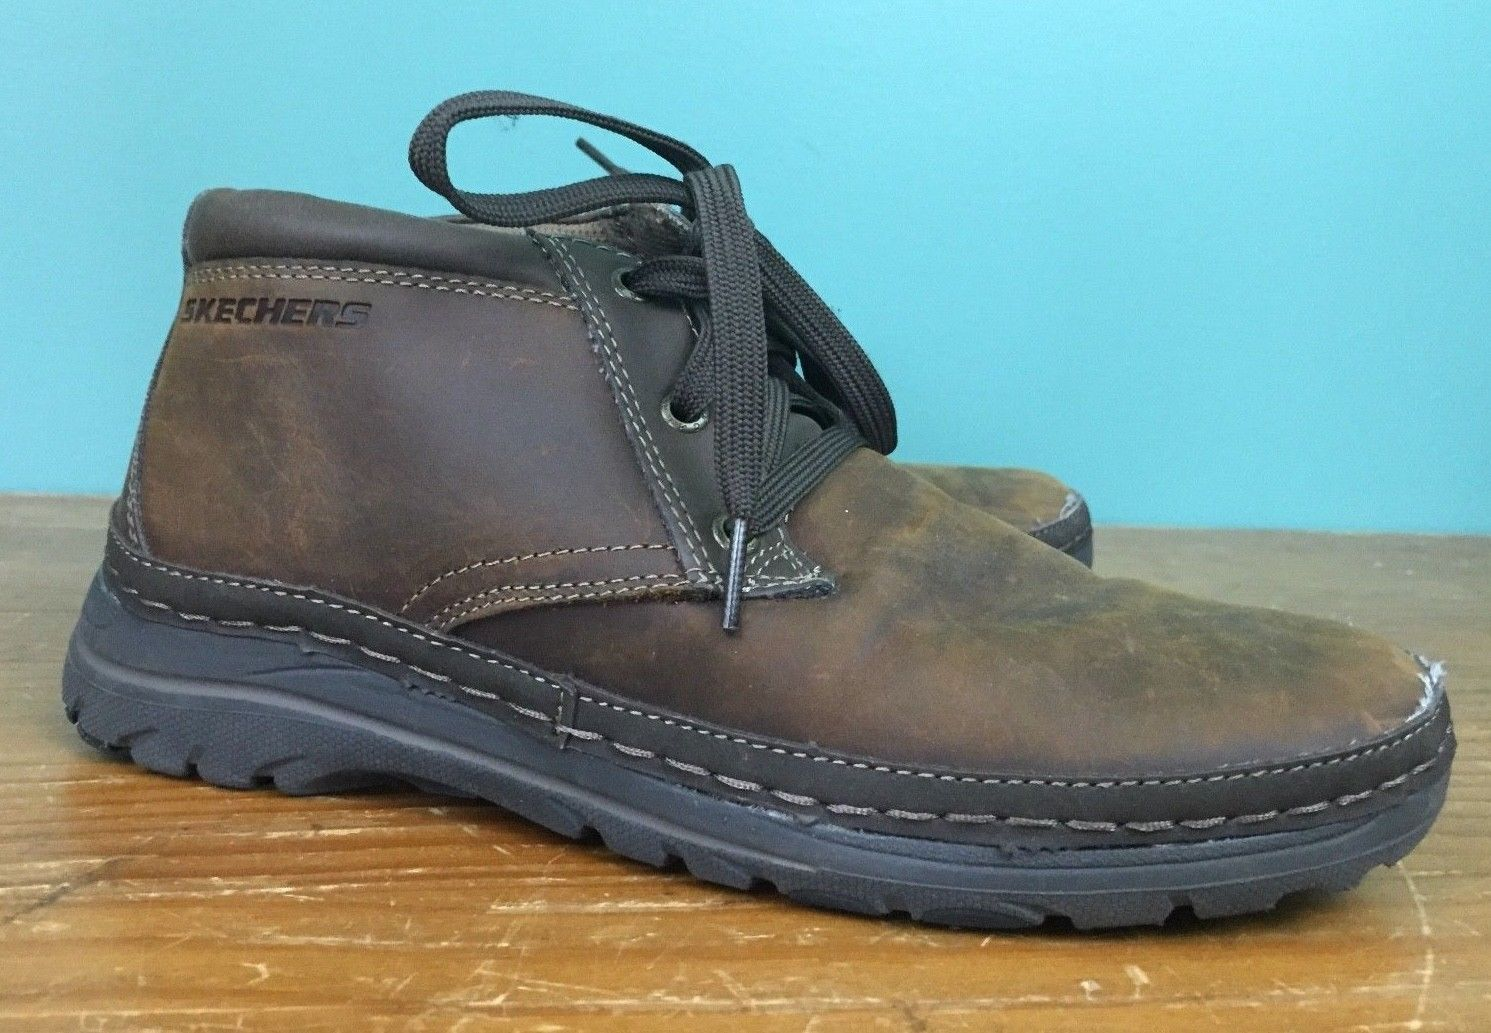 d2a56689ac S l1600. S l1600. Previous. Skechers USA Men's Selected Renton Chukka Boots  - Size 8 - Brown Leather ...